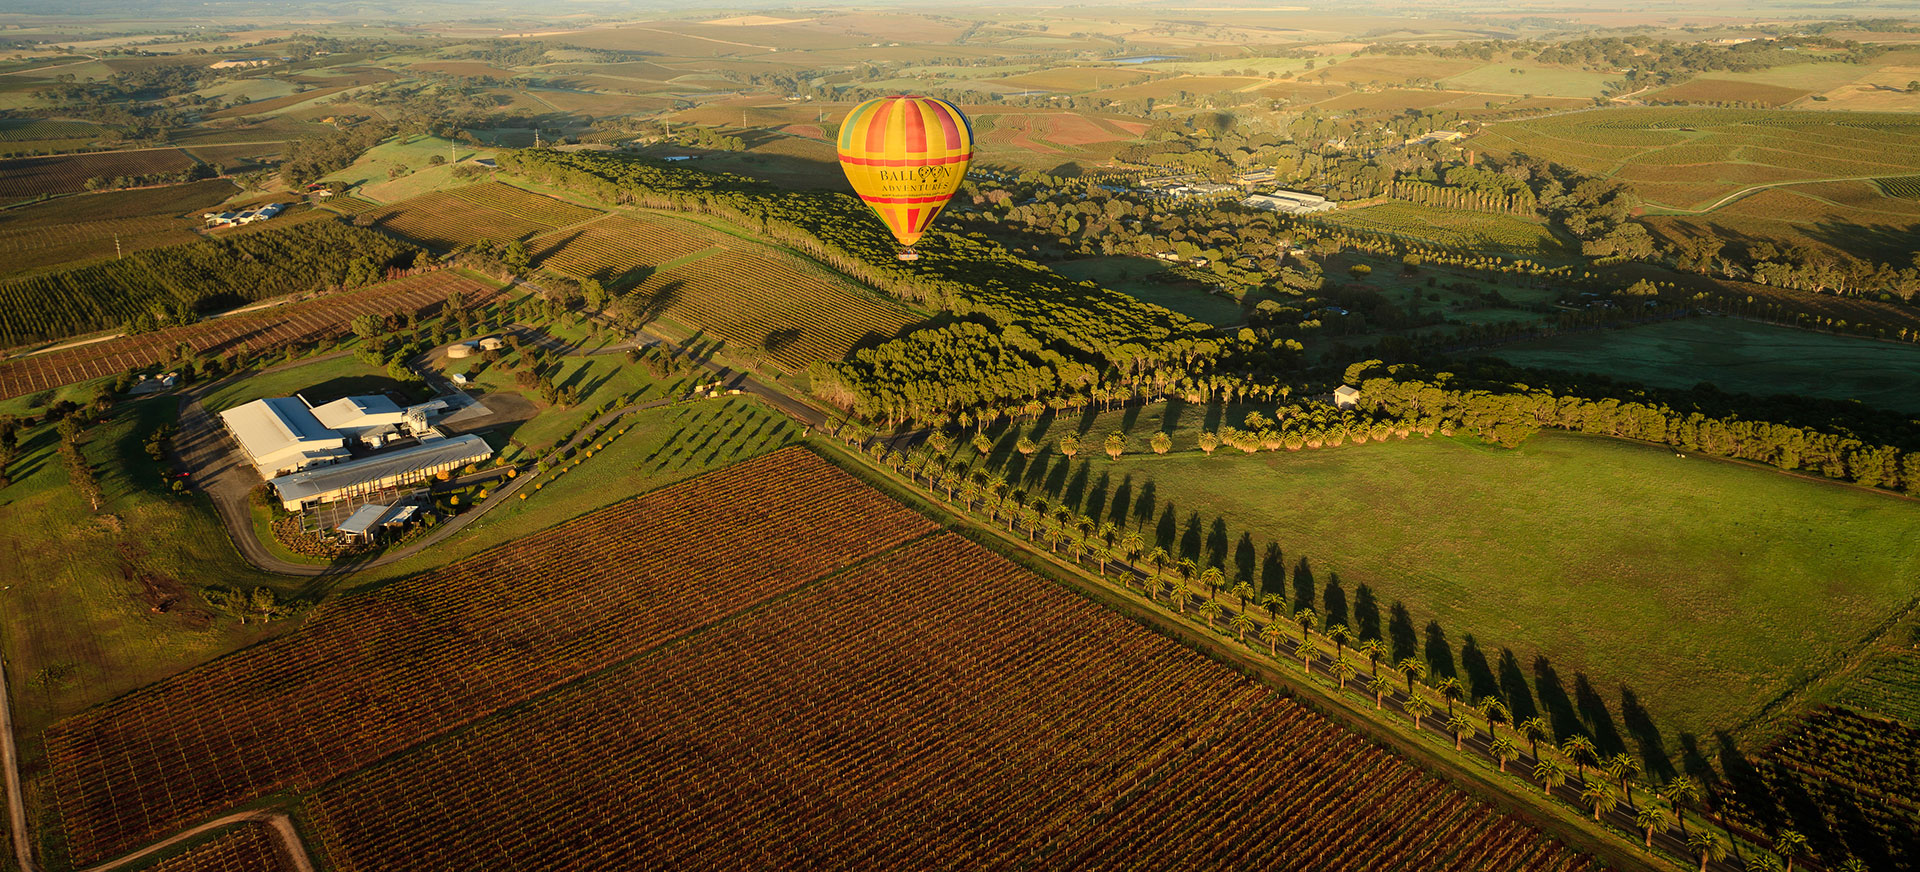 South Australia, Barossa Valley